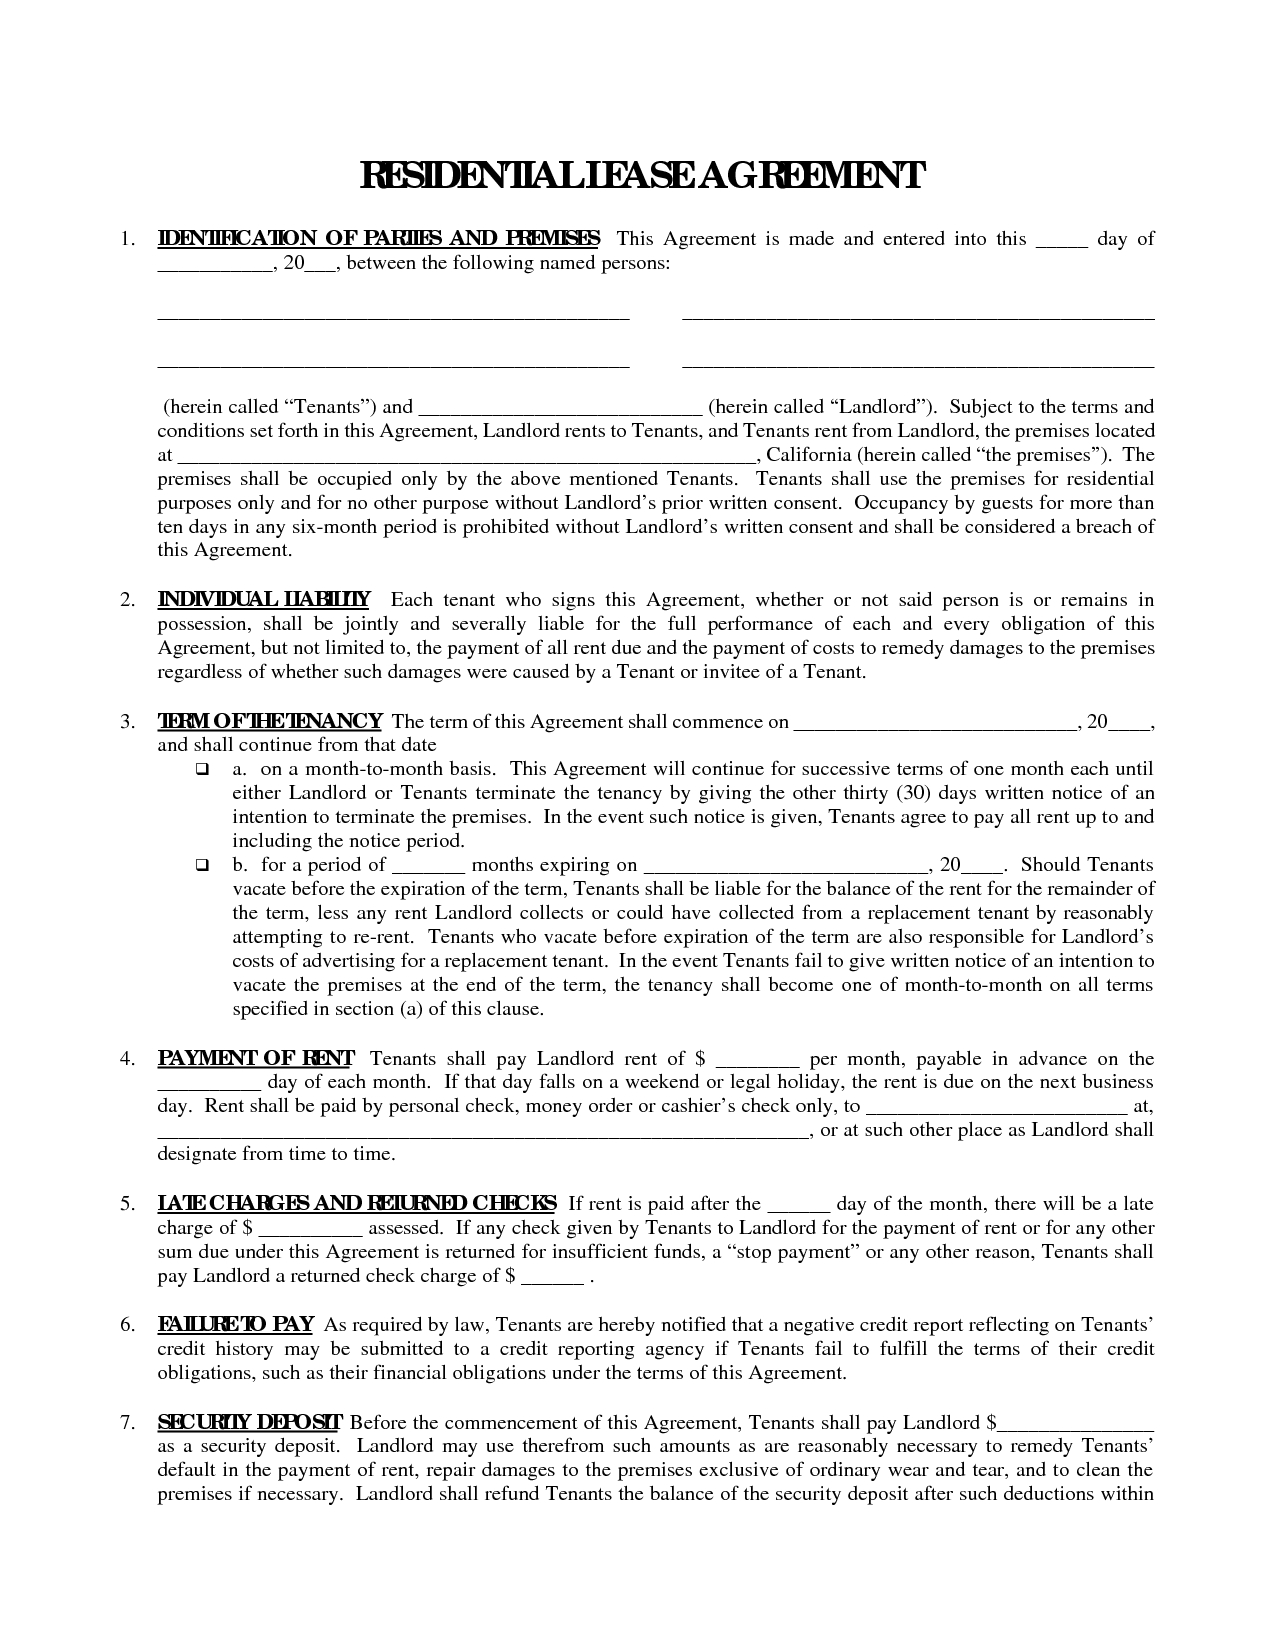 Free Rental Forms For Landlords To Print | Free Printable Lease - Free Printable California Residential Lease Agreement